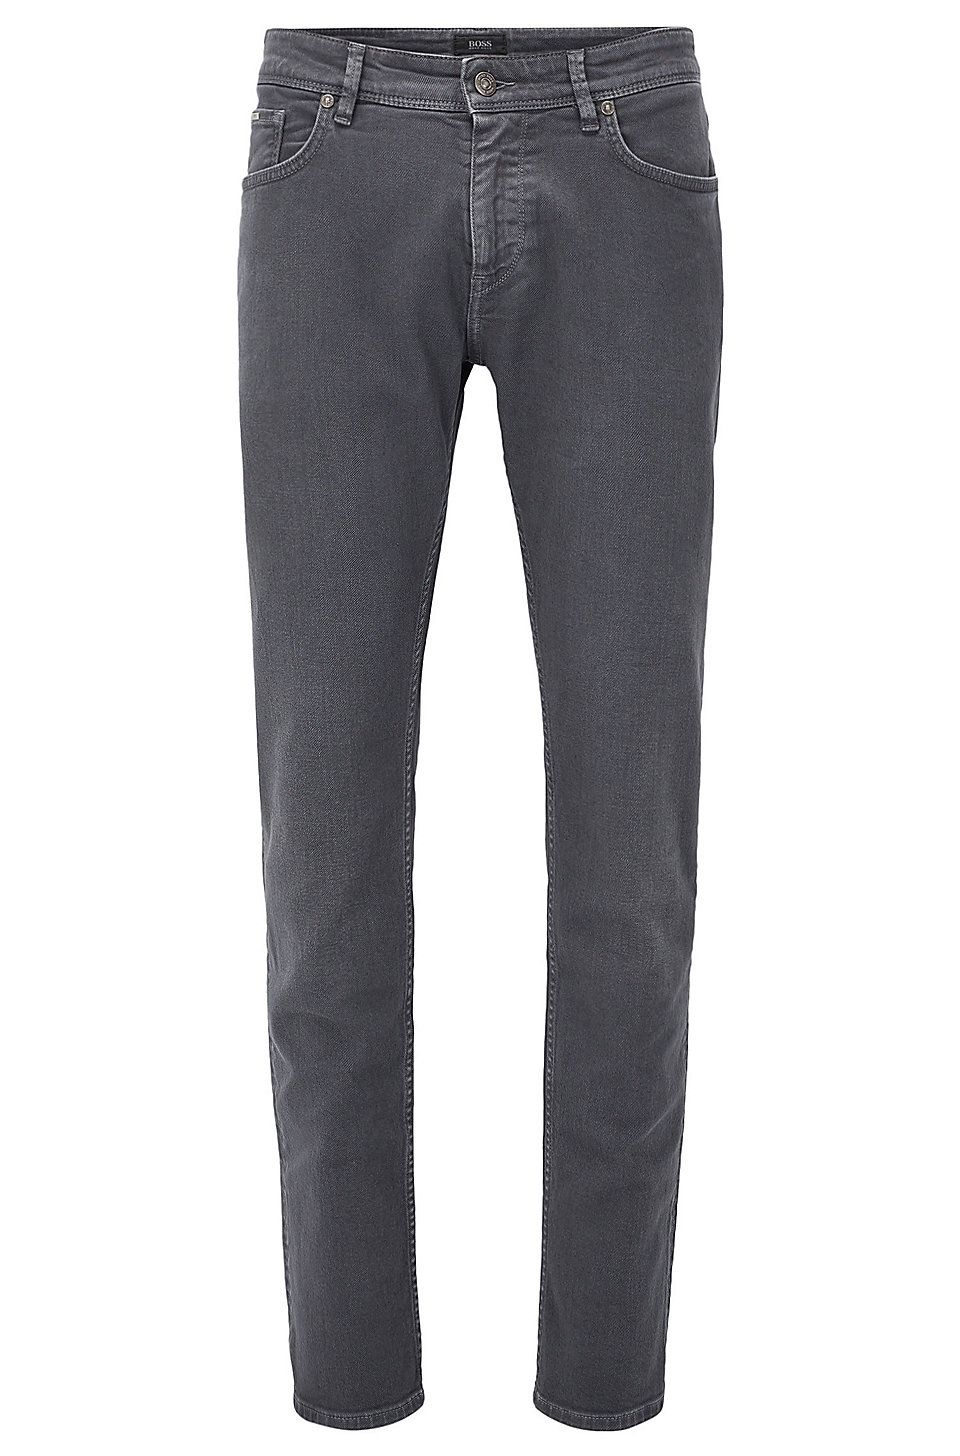 4cea7af69b20 HUGO BOSS Slim-fit jeans in comfort-coloured denim - Dark Grey Jeans from  BOSS for Men in the official HUGO BOSS Online Store free shipping